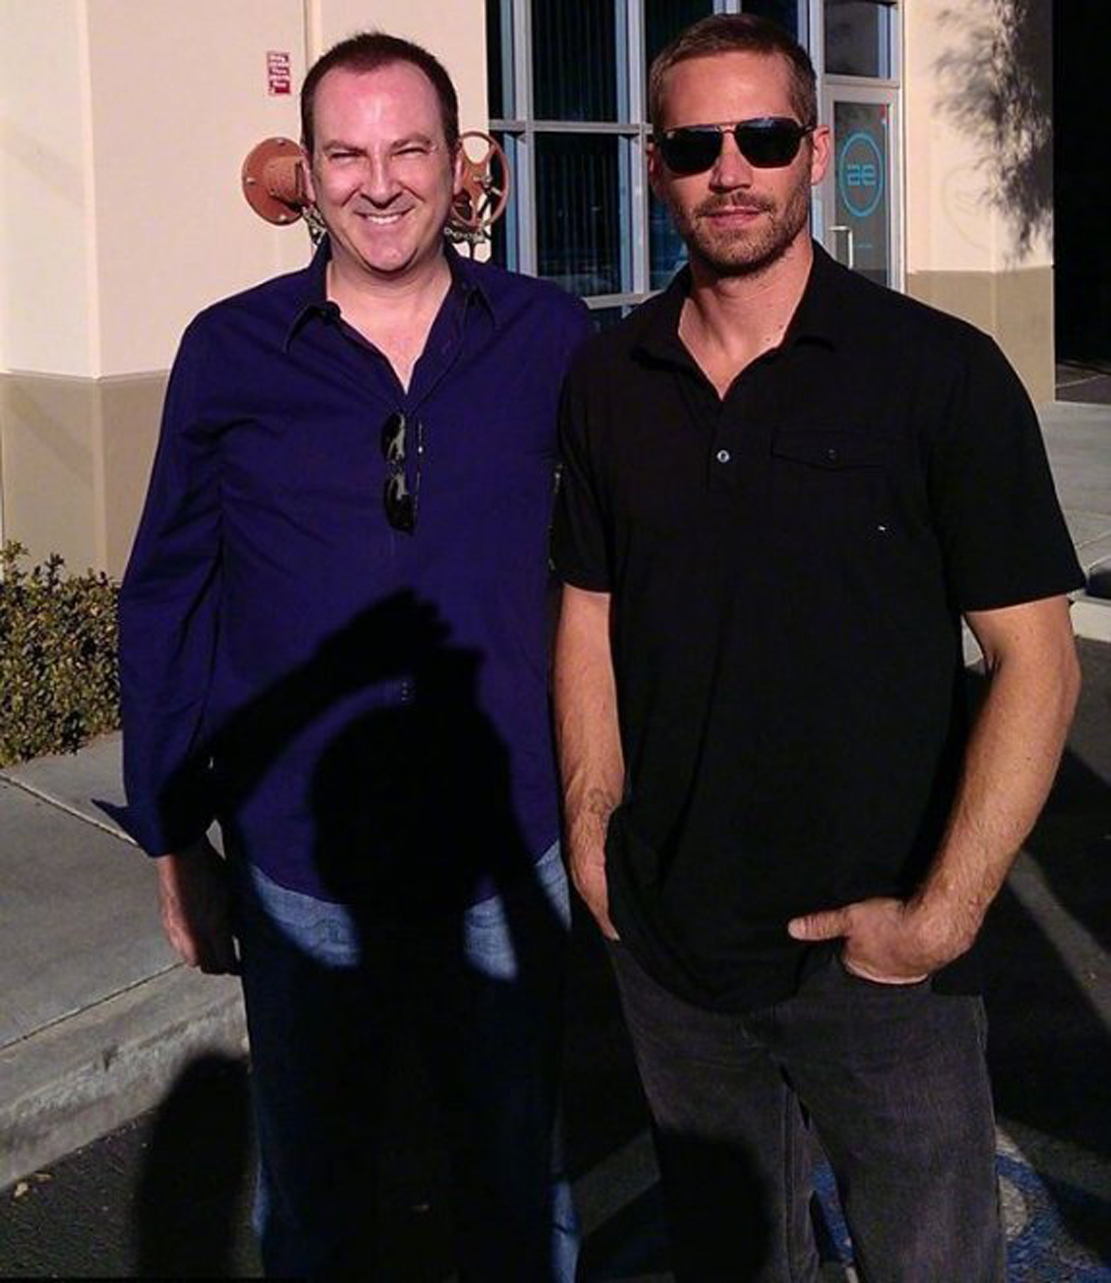 Paul Walker in the death sunglasses with friend Roger Rodas who was also killed.